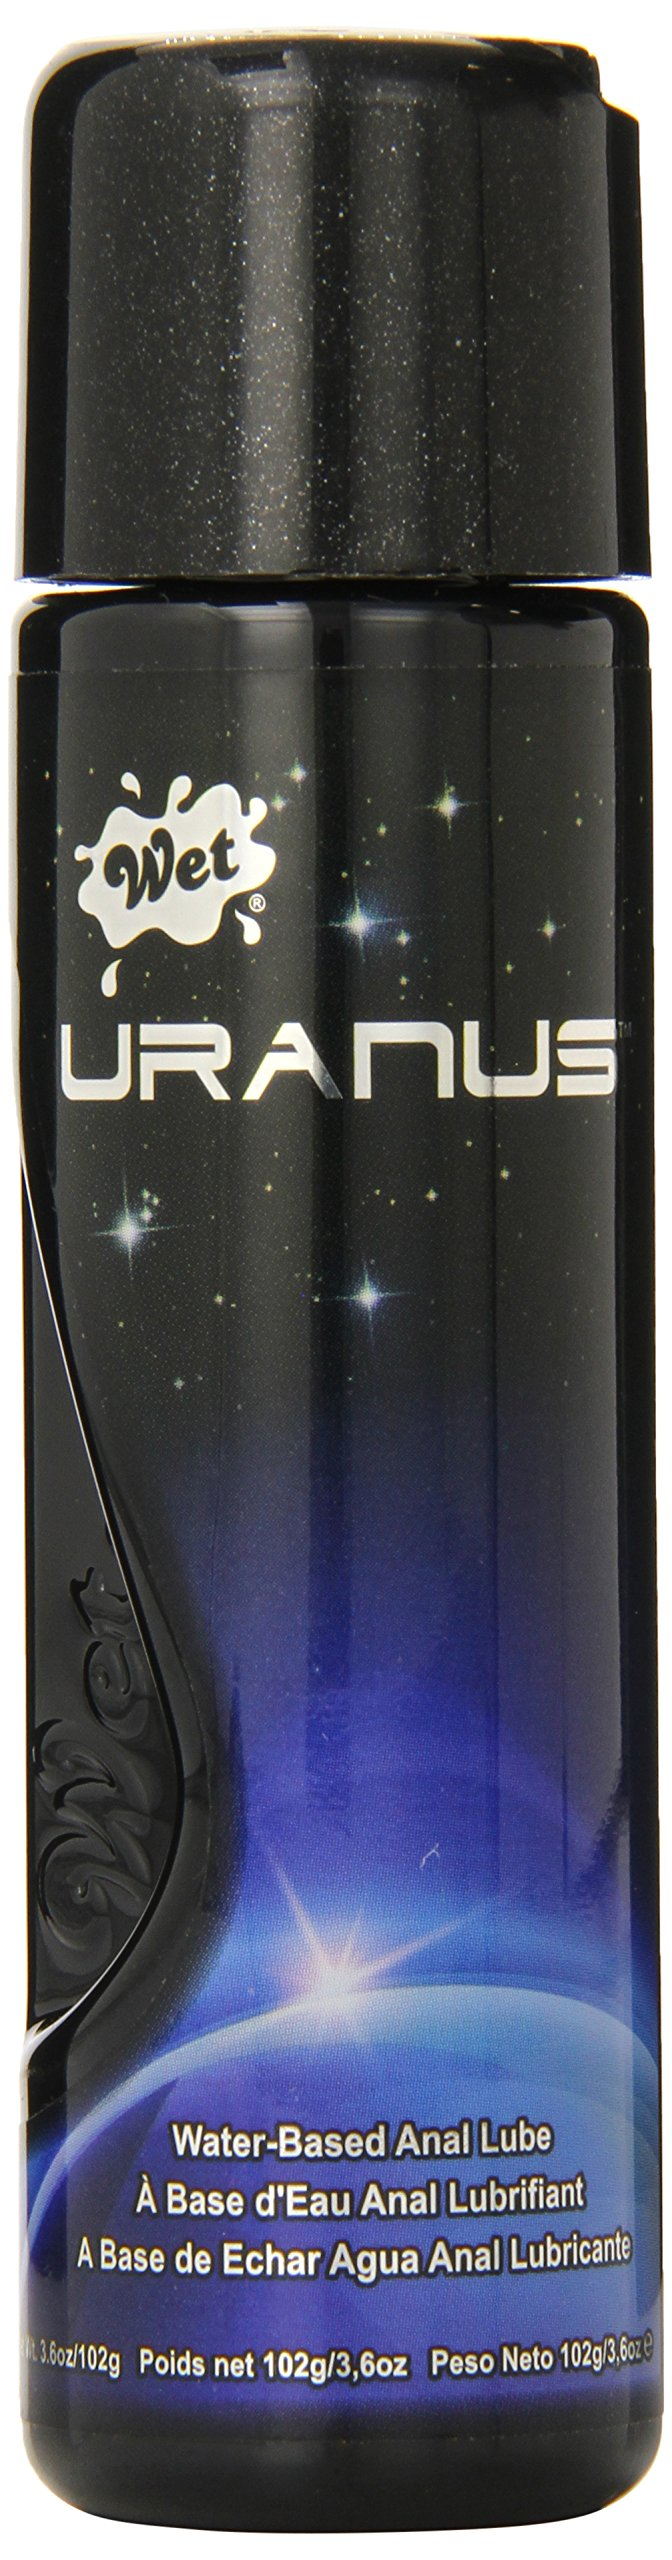 Wet Uranus Anal Personal Lubricant Water Based Lube, 3.6 Ounce